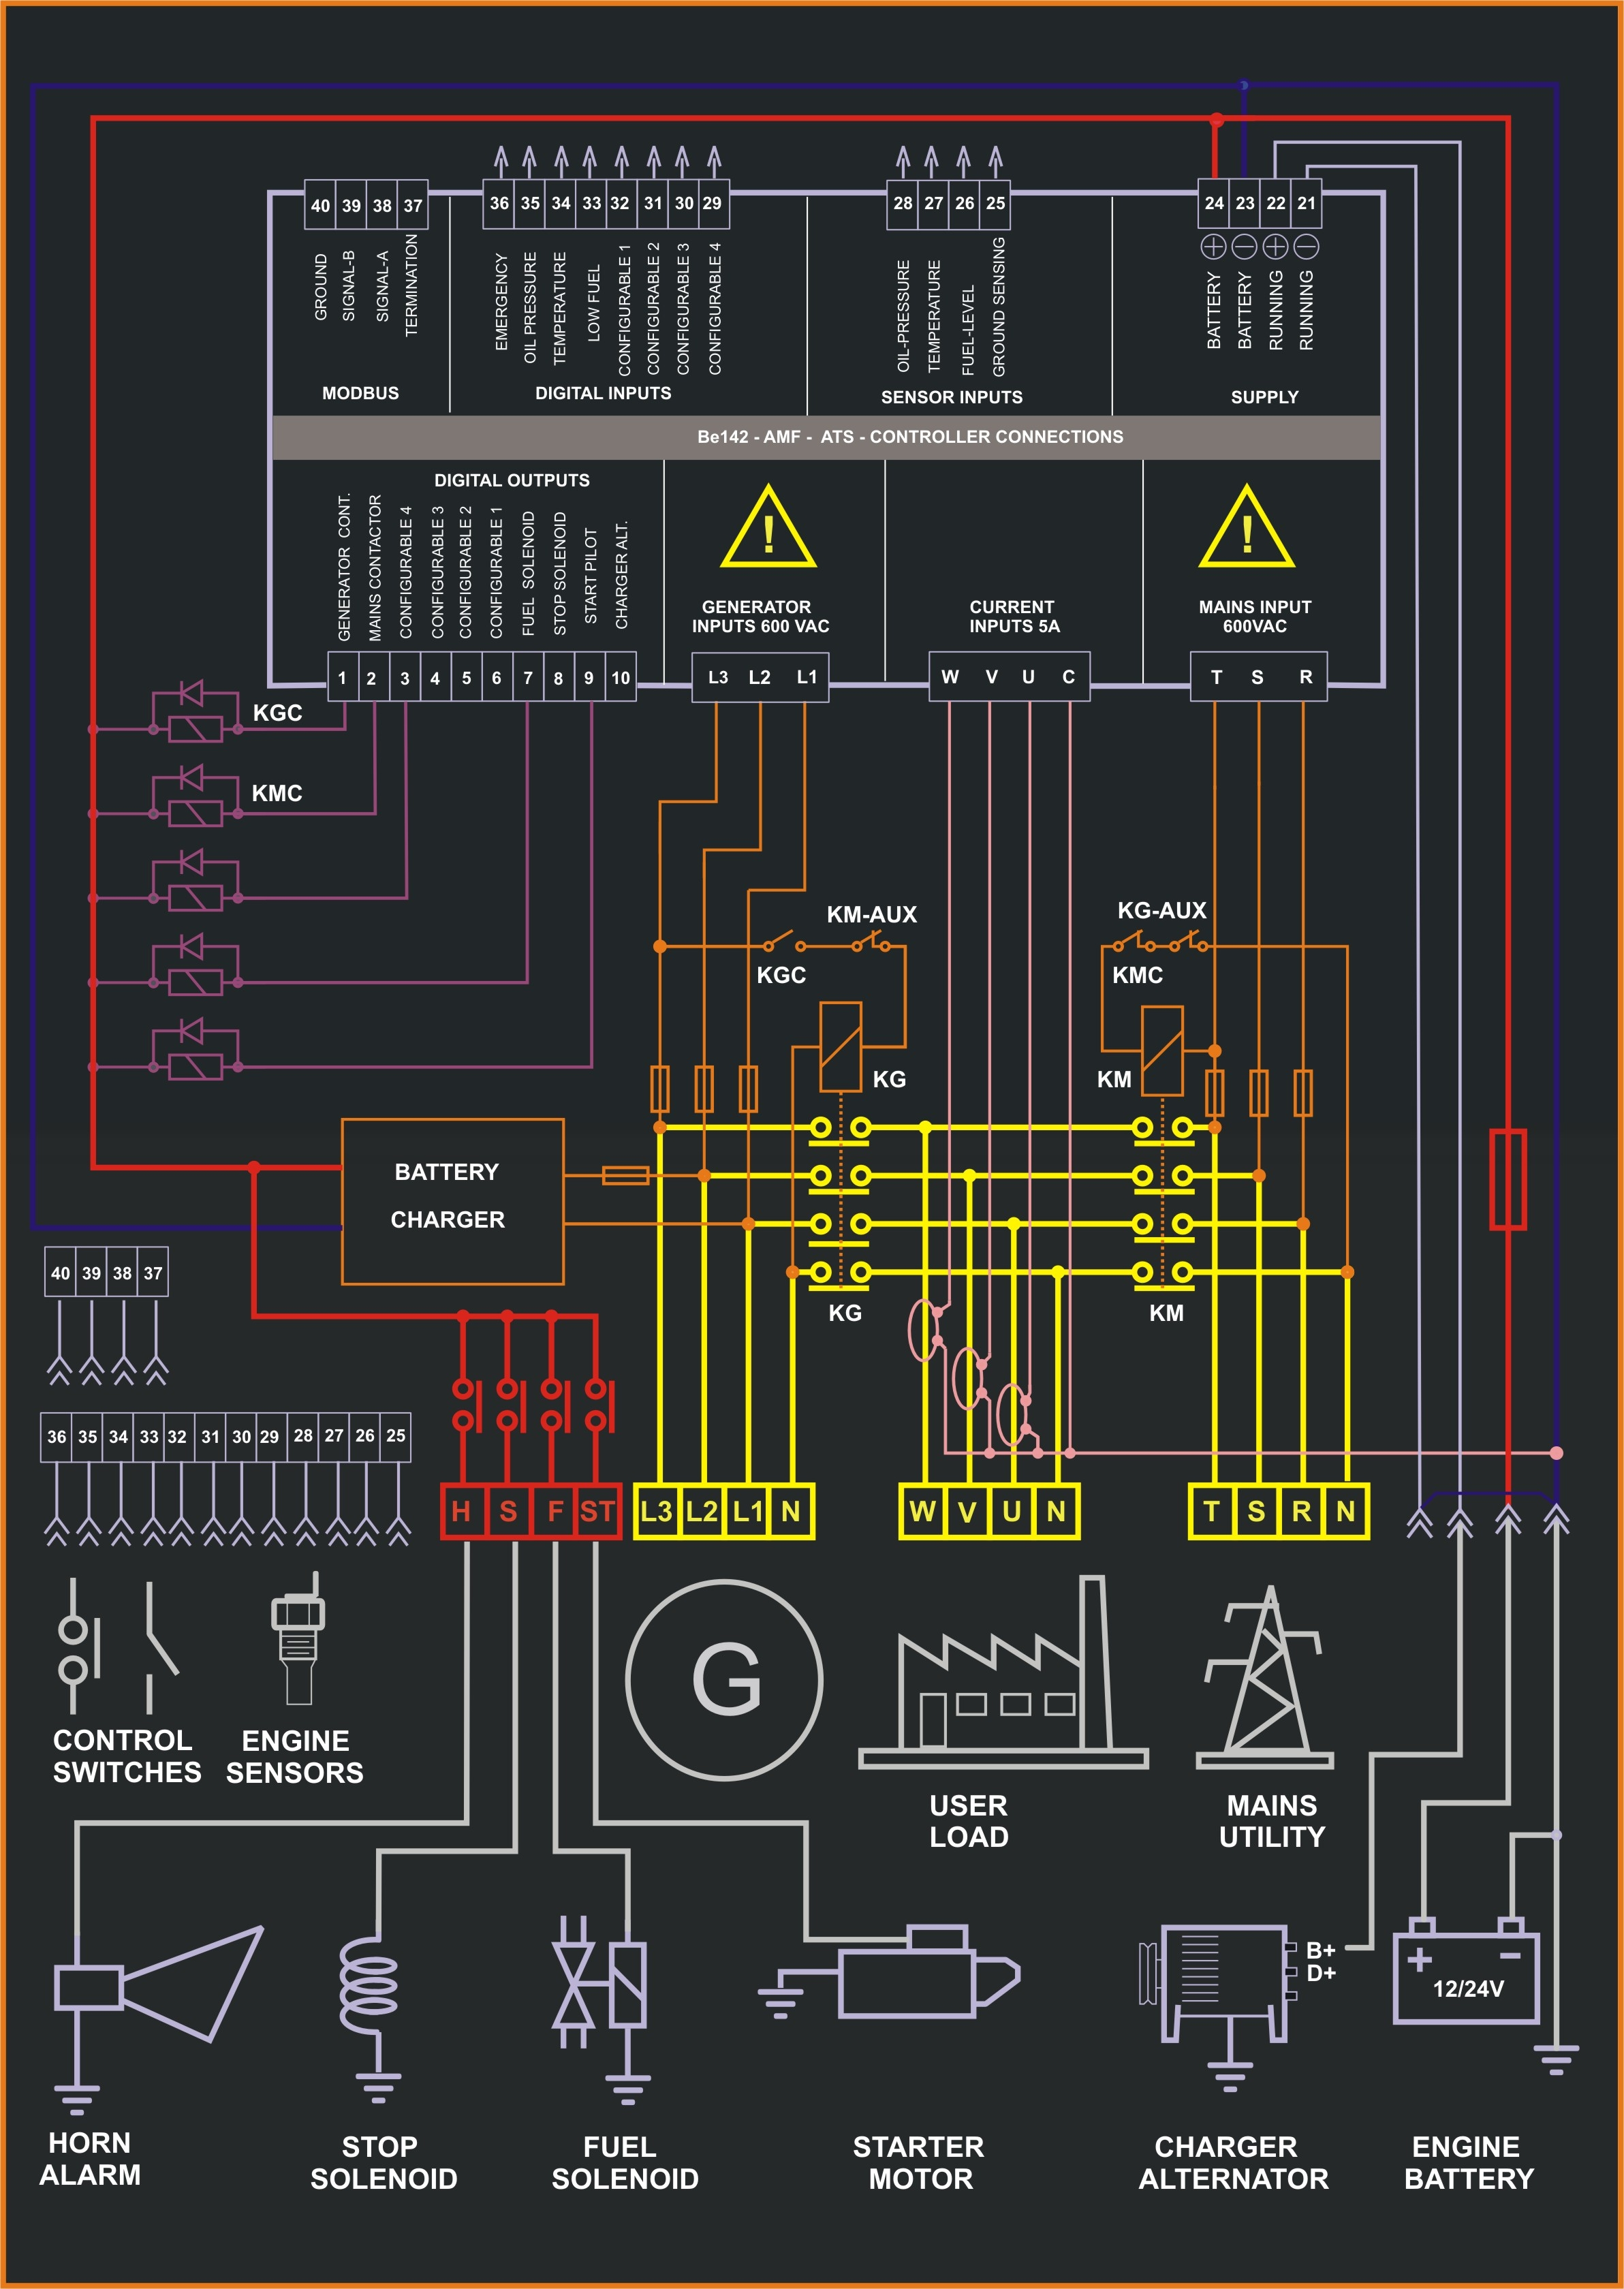 AMF Controller Be142 Wiring Diagram